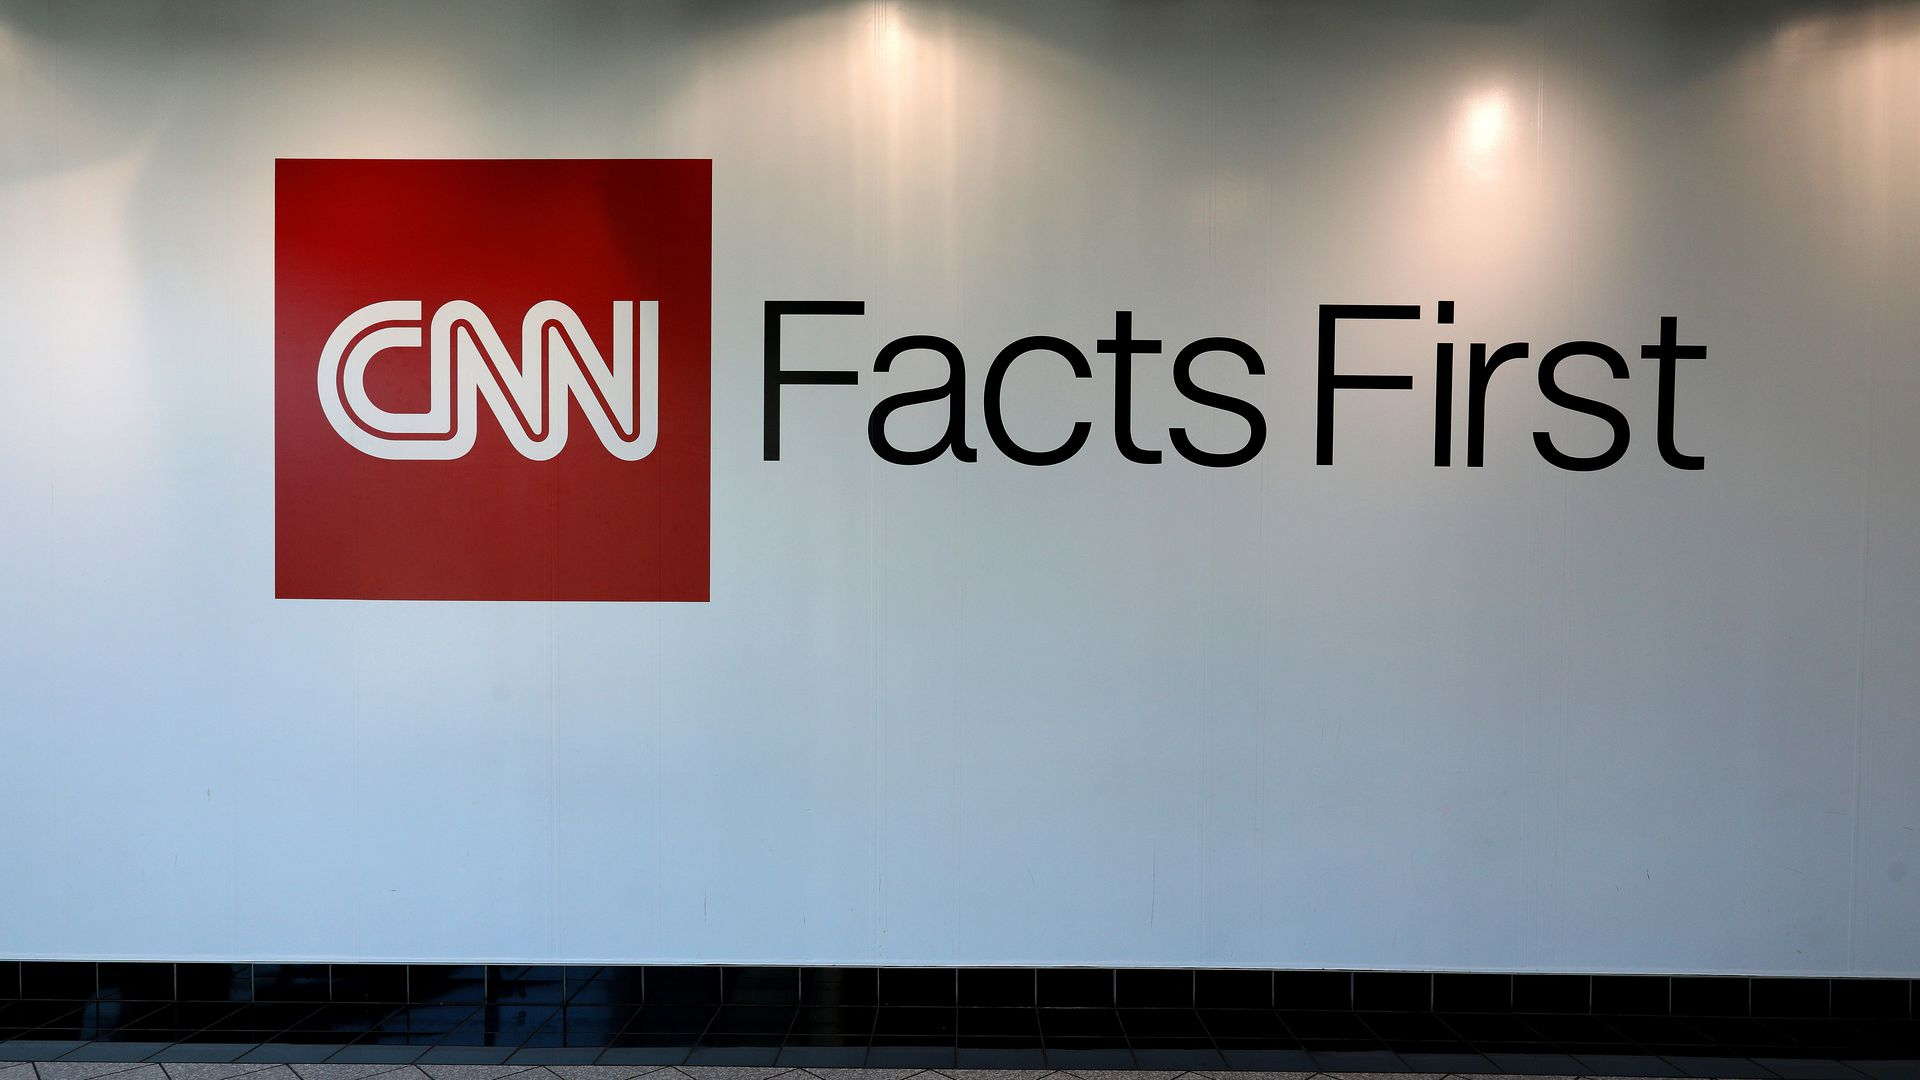 """CNN, Facts First"" is written on a white wall."